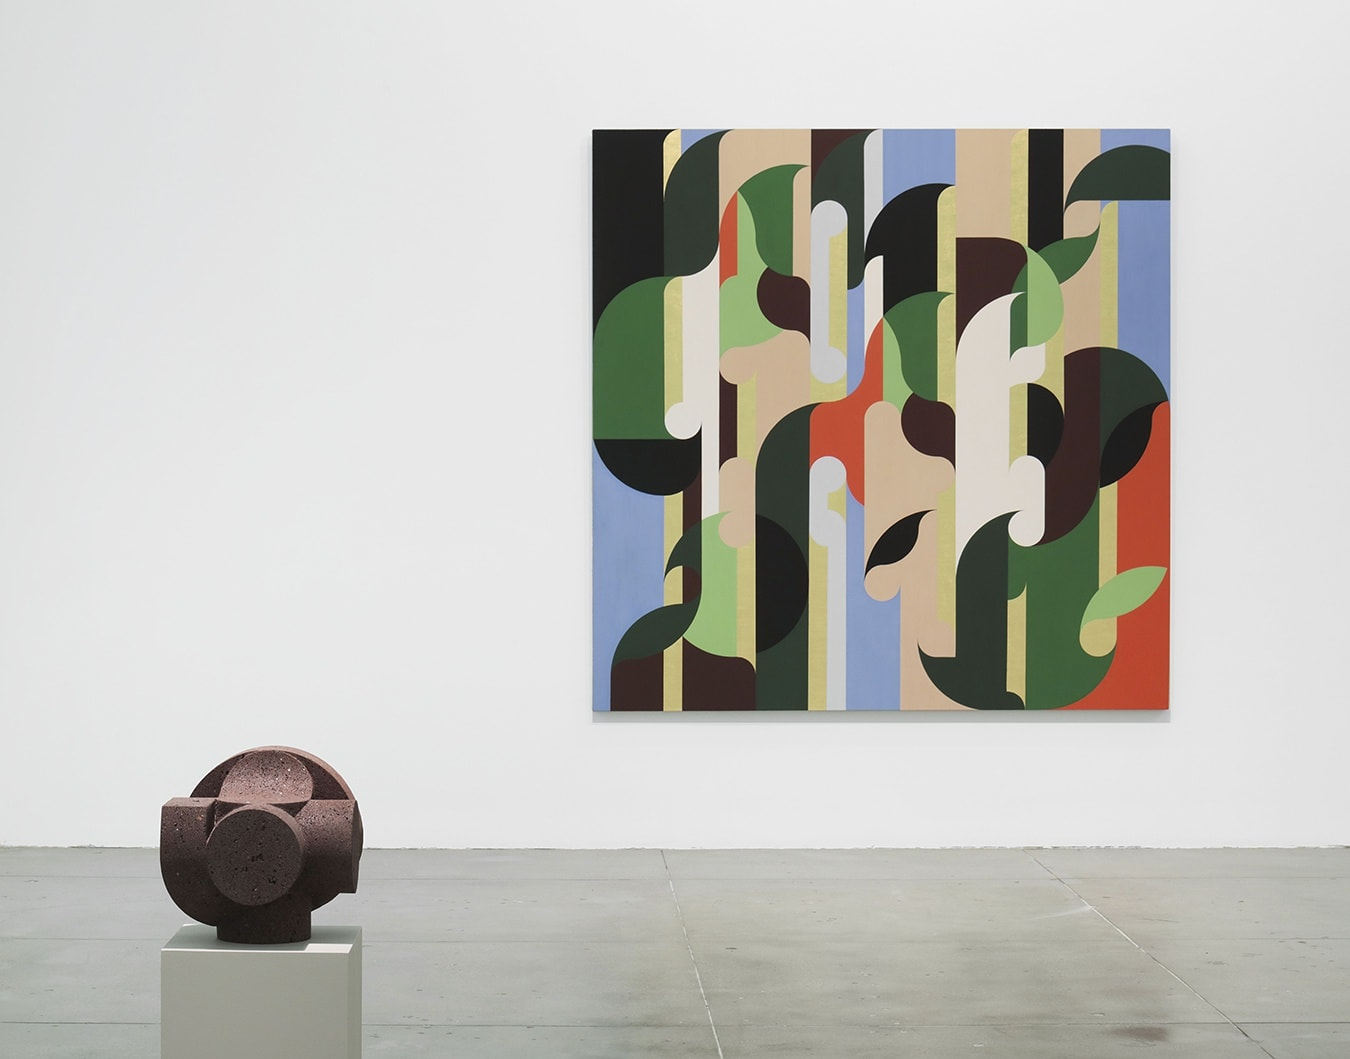 A stone sculpture in front of an abstract painting.